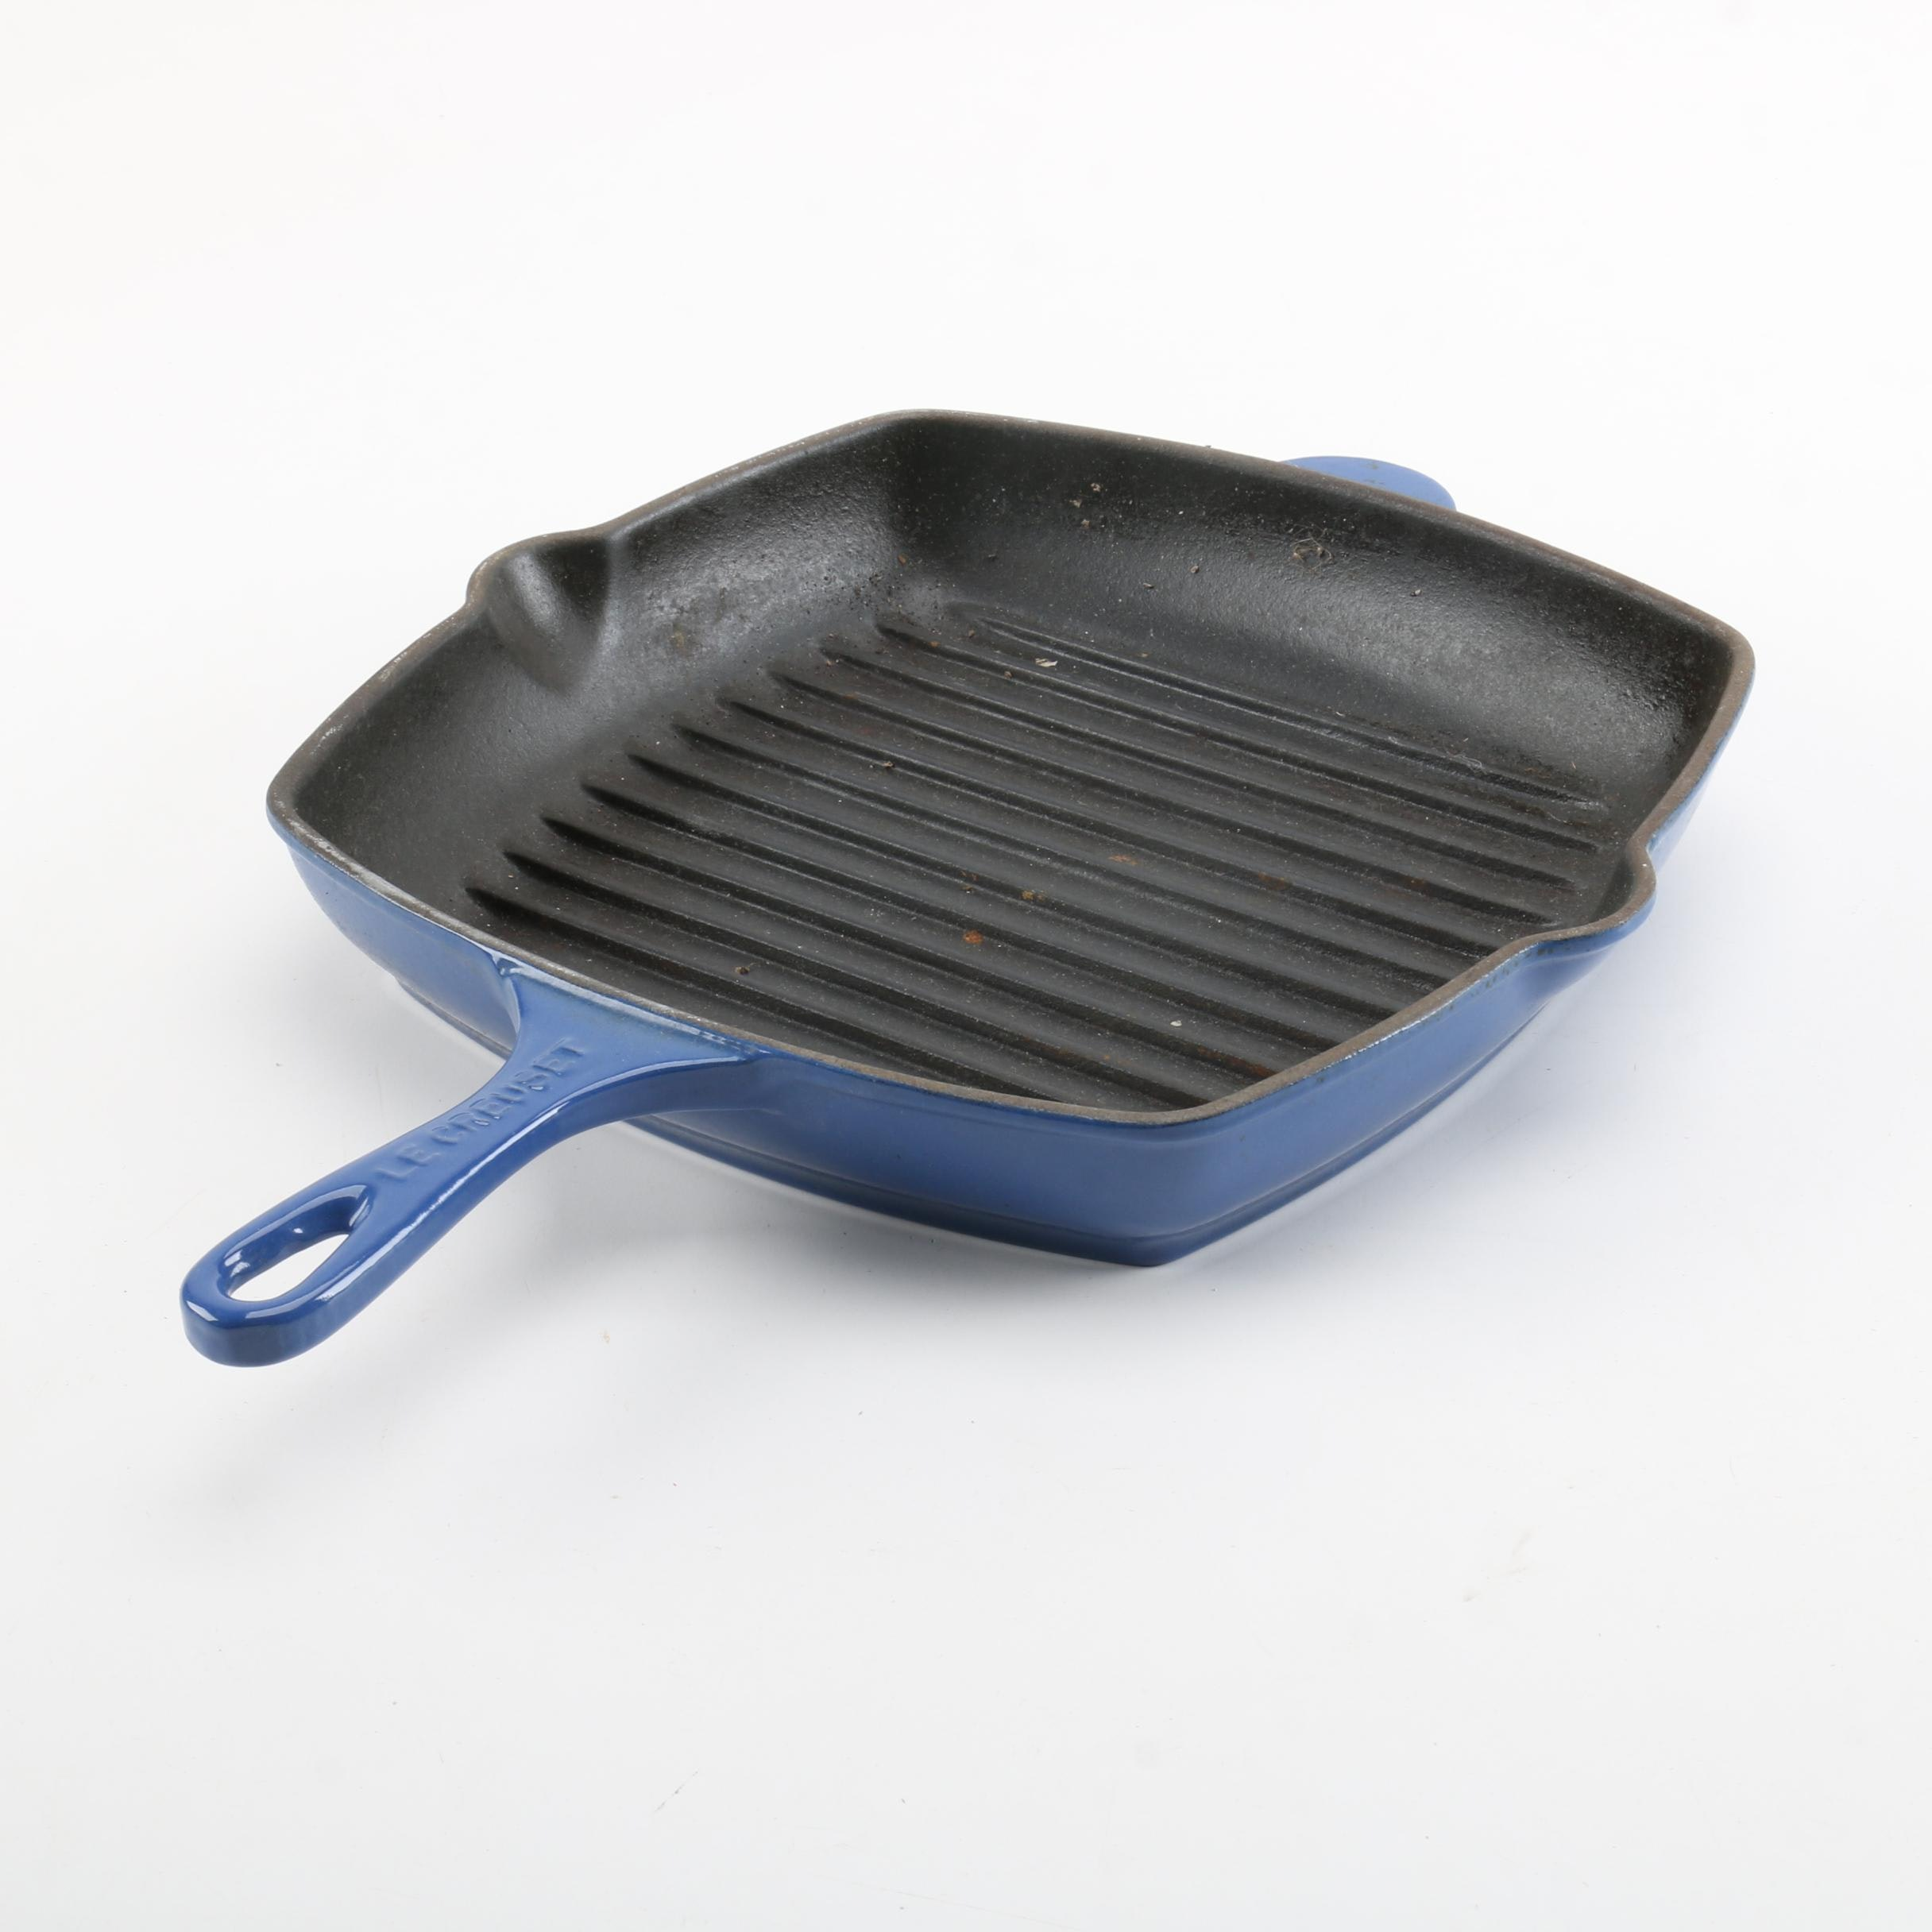 Le Creuset Grill Skillet